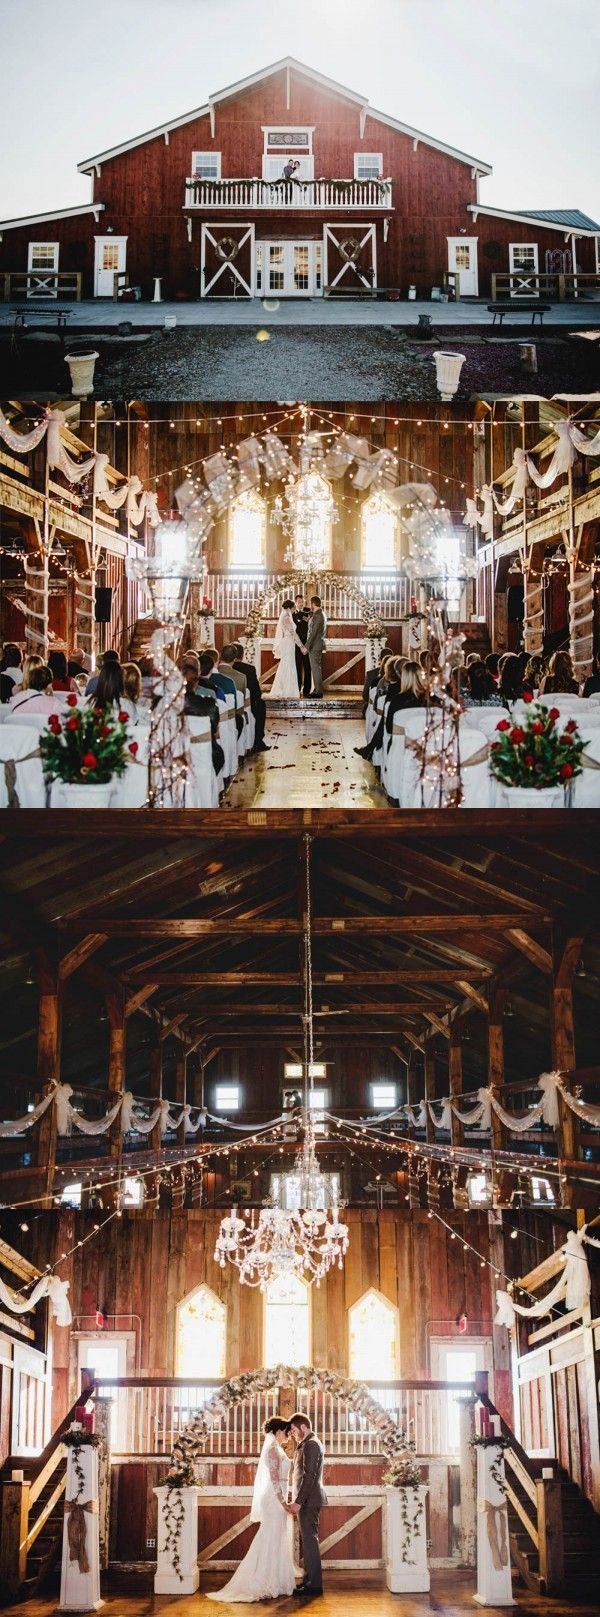 11 of The Most Beautiful Barn Venues For Getting Hitched ...